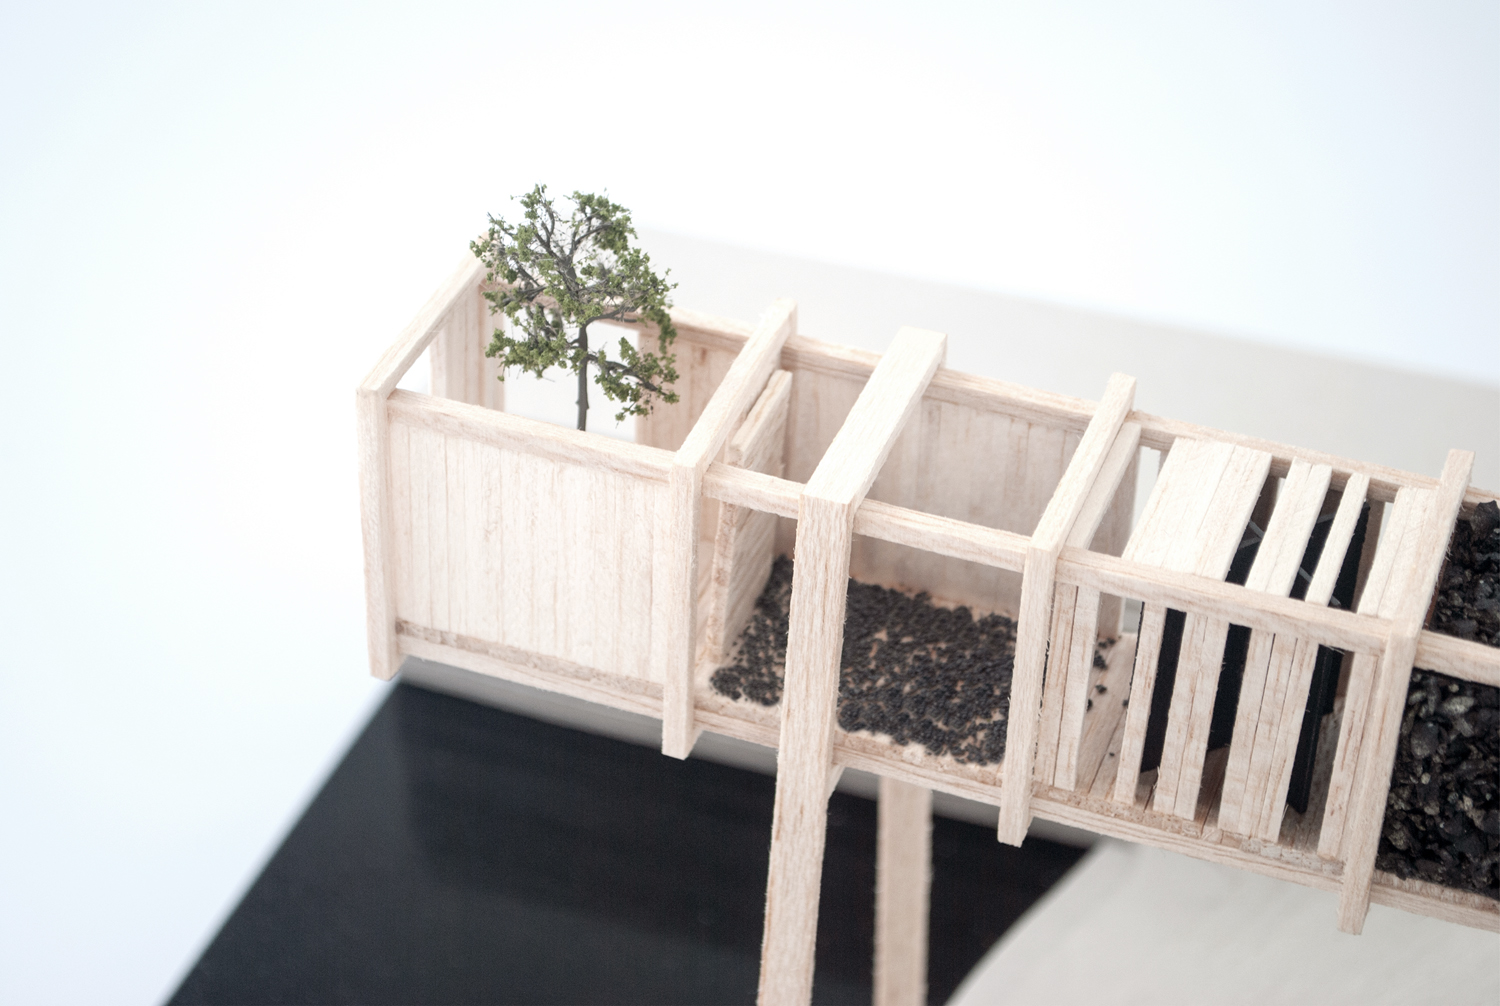 microcosme_con_form_architects_model 06.jpg